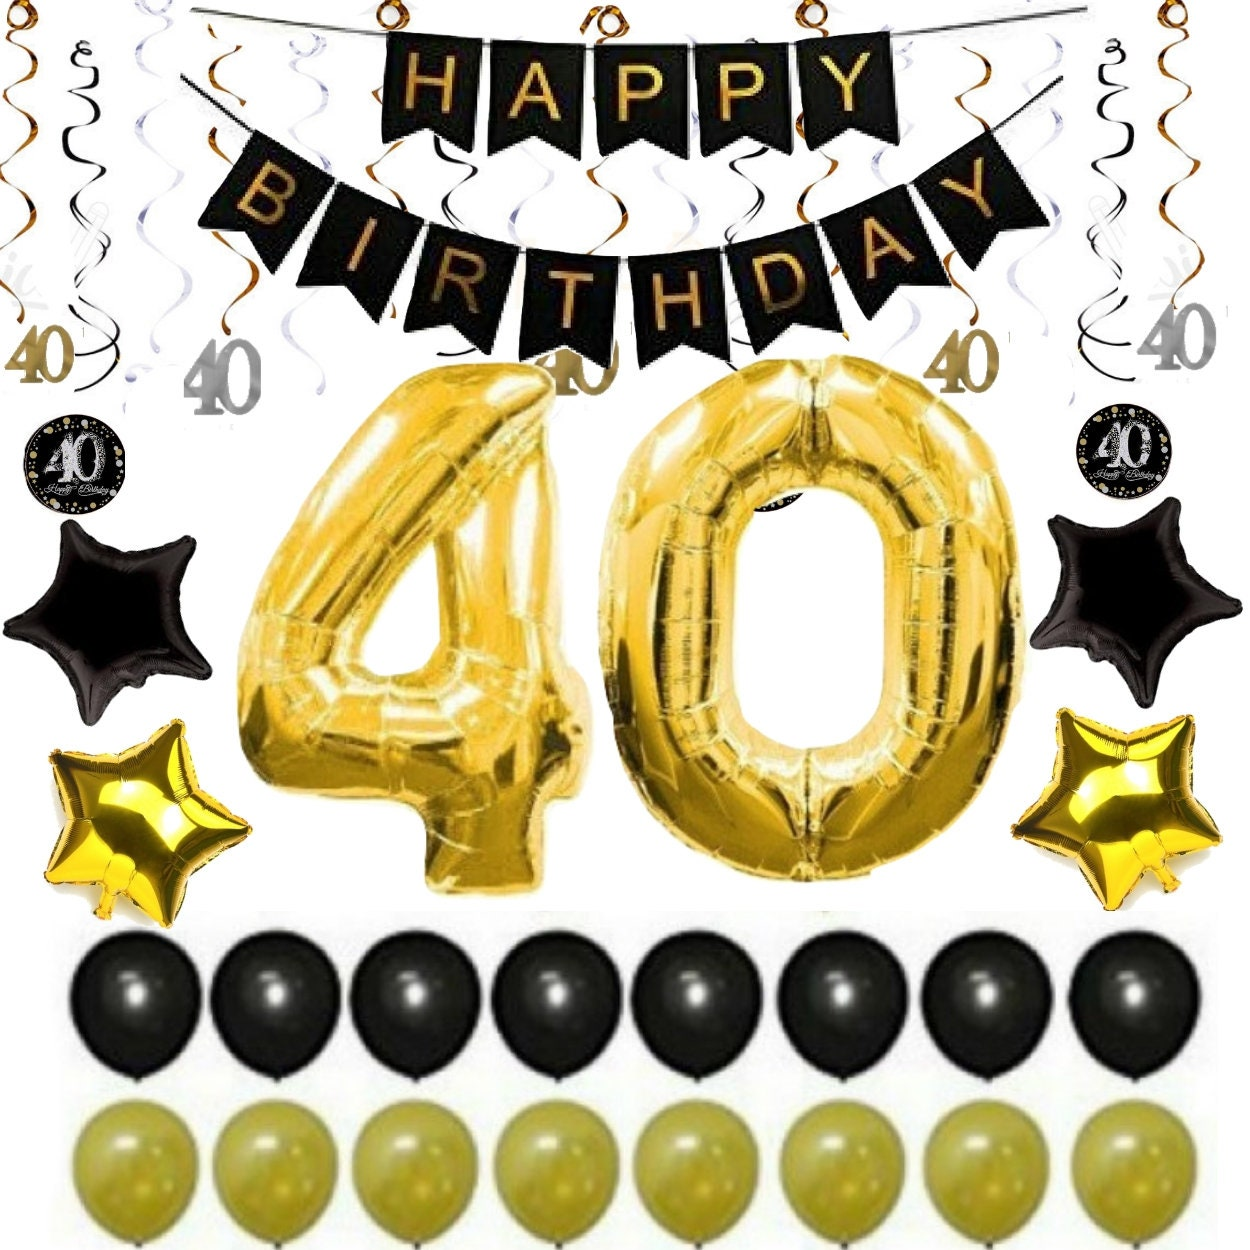 40th BIRTHDAY PARTY DECORATIONS Balloons Decor Supplies